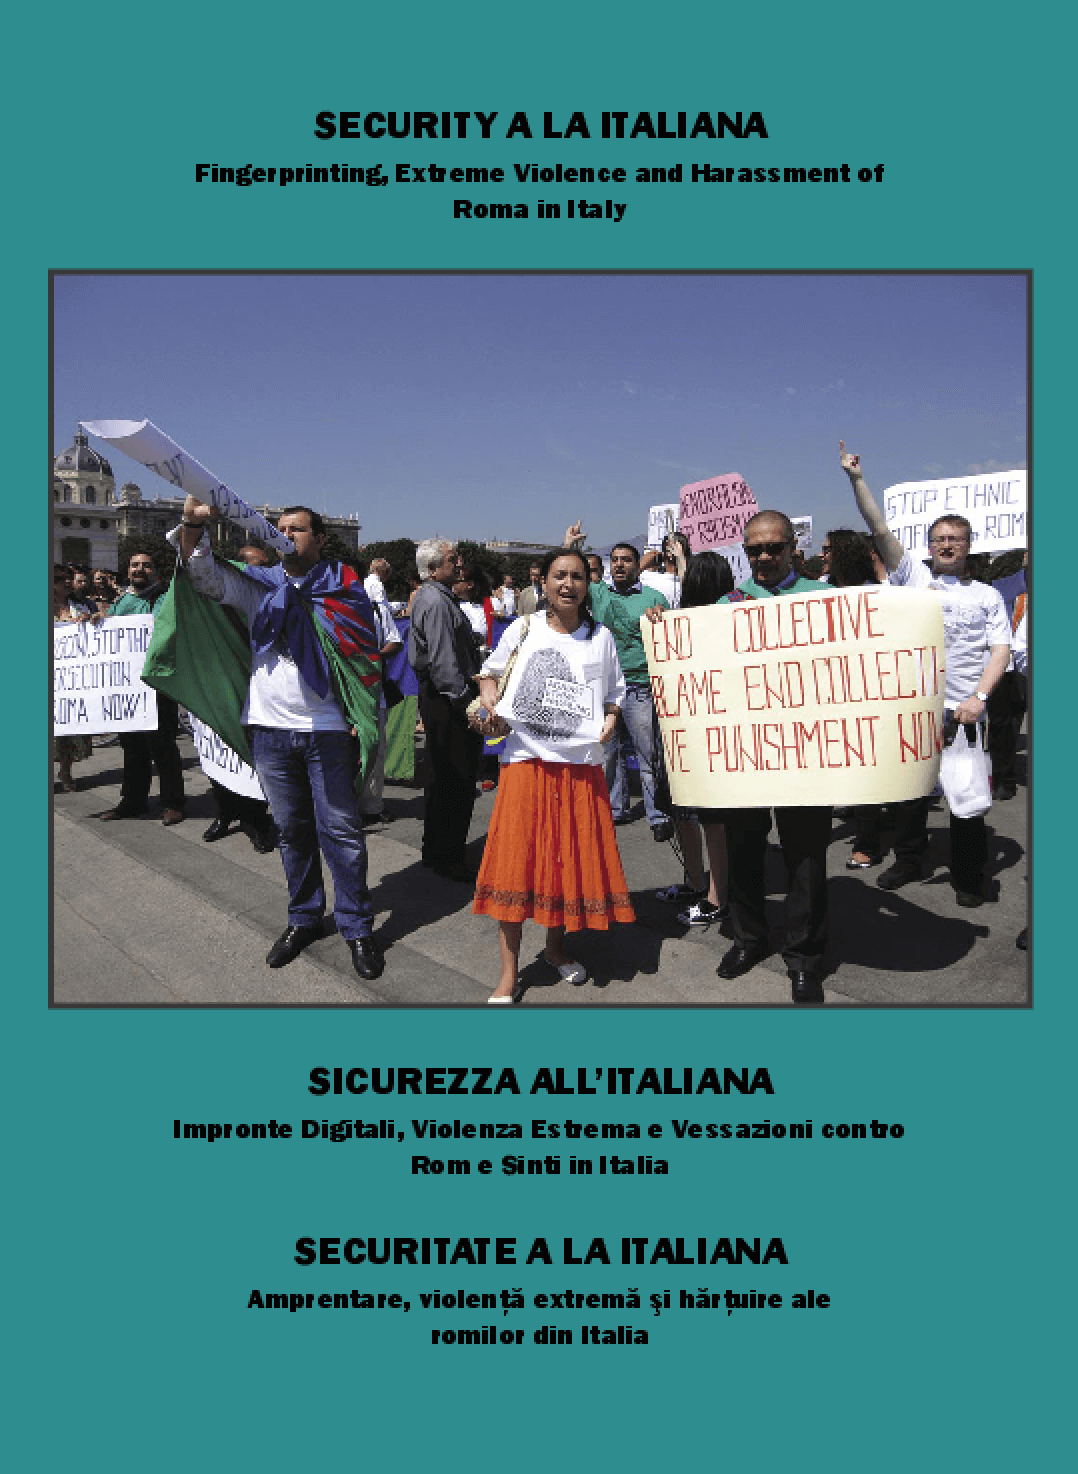 Security a la Italiana: Fingerprinting, Extreme Violence and Harassment of Roma in Italy